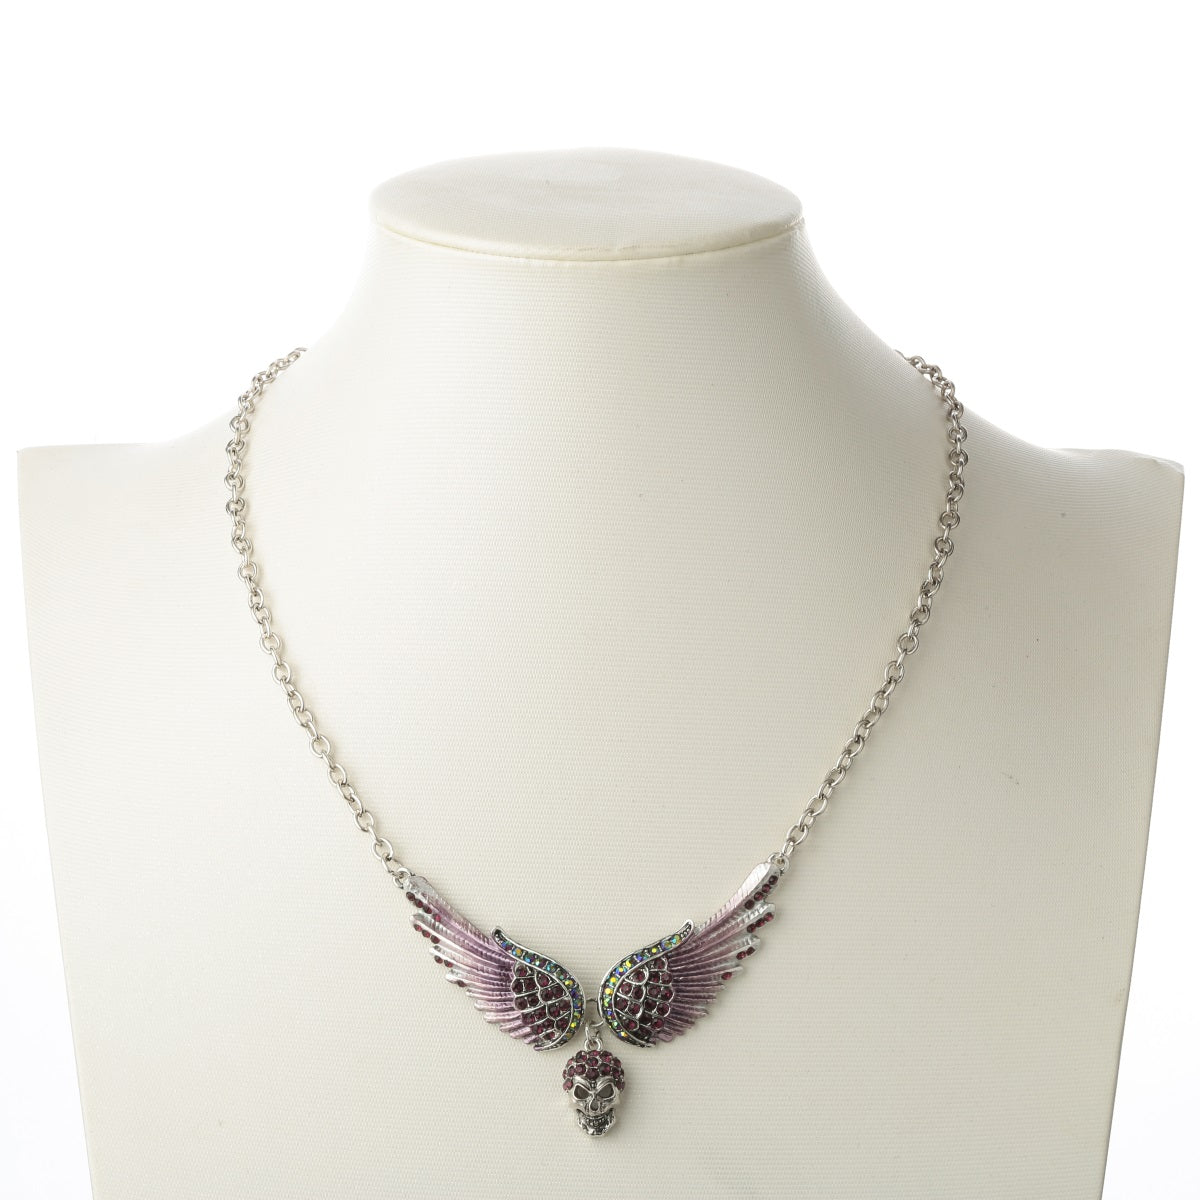 Angel Wings Skull Choker Necklace - The Creative Booth